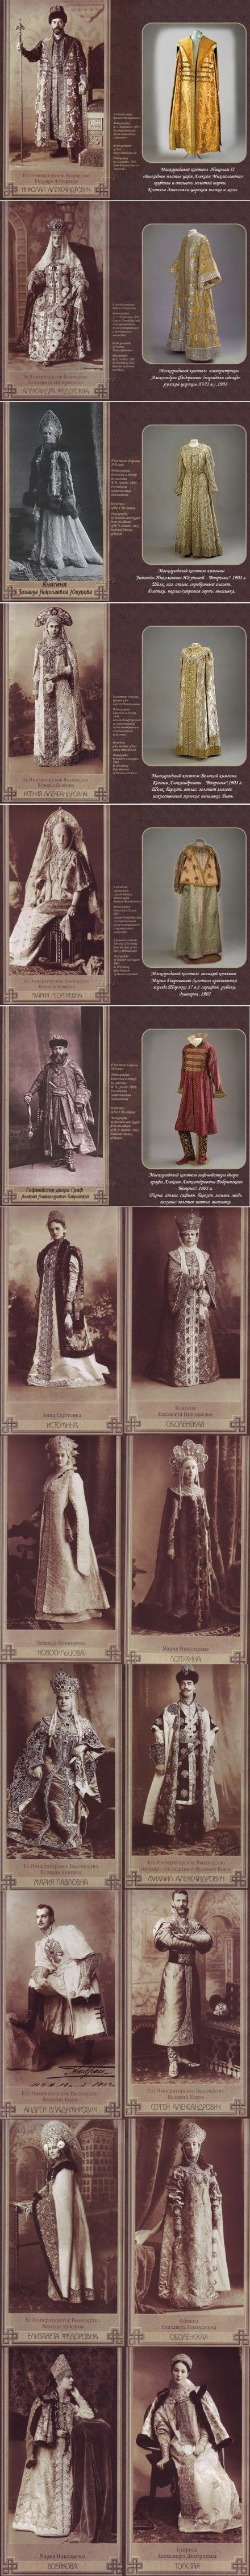 IMPERIAL RUSSIA WINTER PALACE BALL~  1903. The last imperial ball before the Bolshevik Revolution.  Elaborate embroidered and bejeweled costumes with jeweled tiaras .